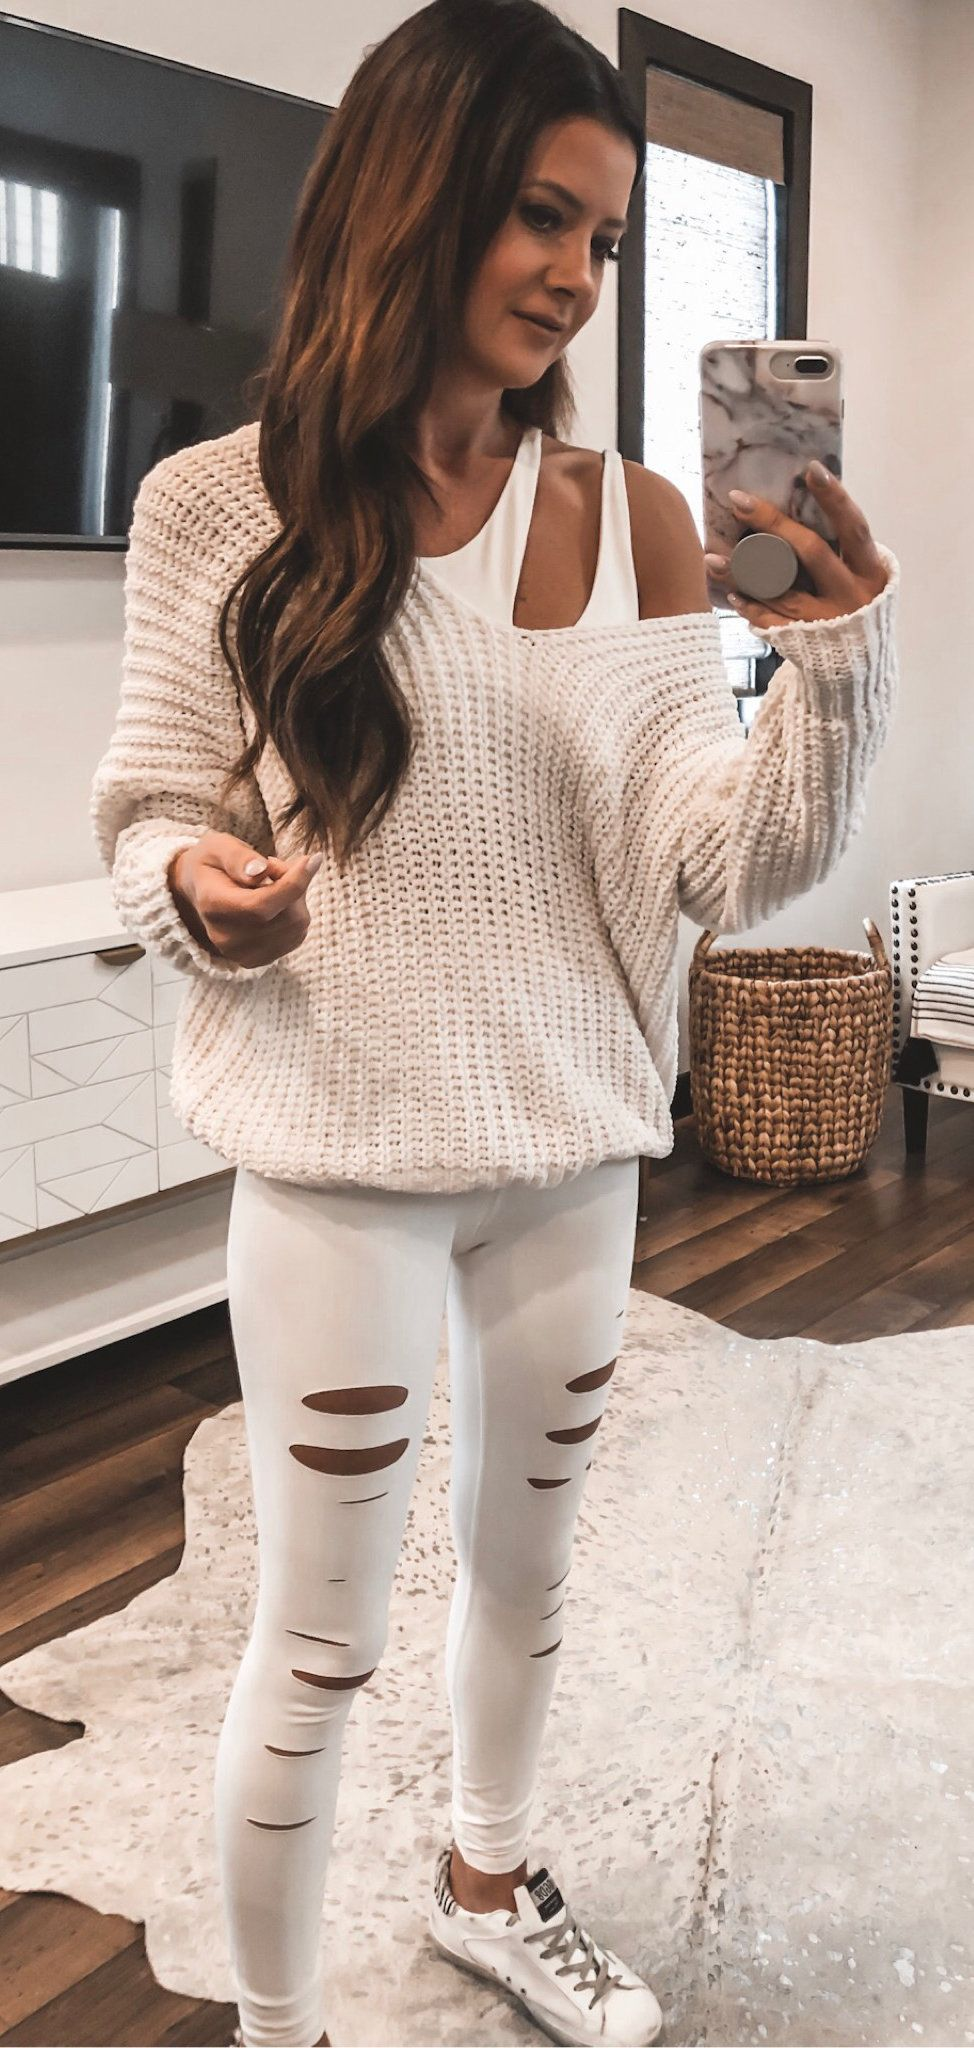 white long-sleeved shirt and jeans #summer #outfits